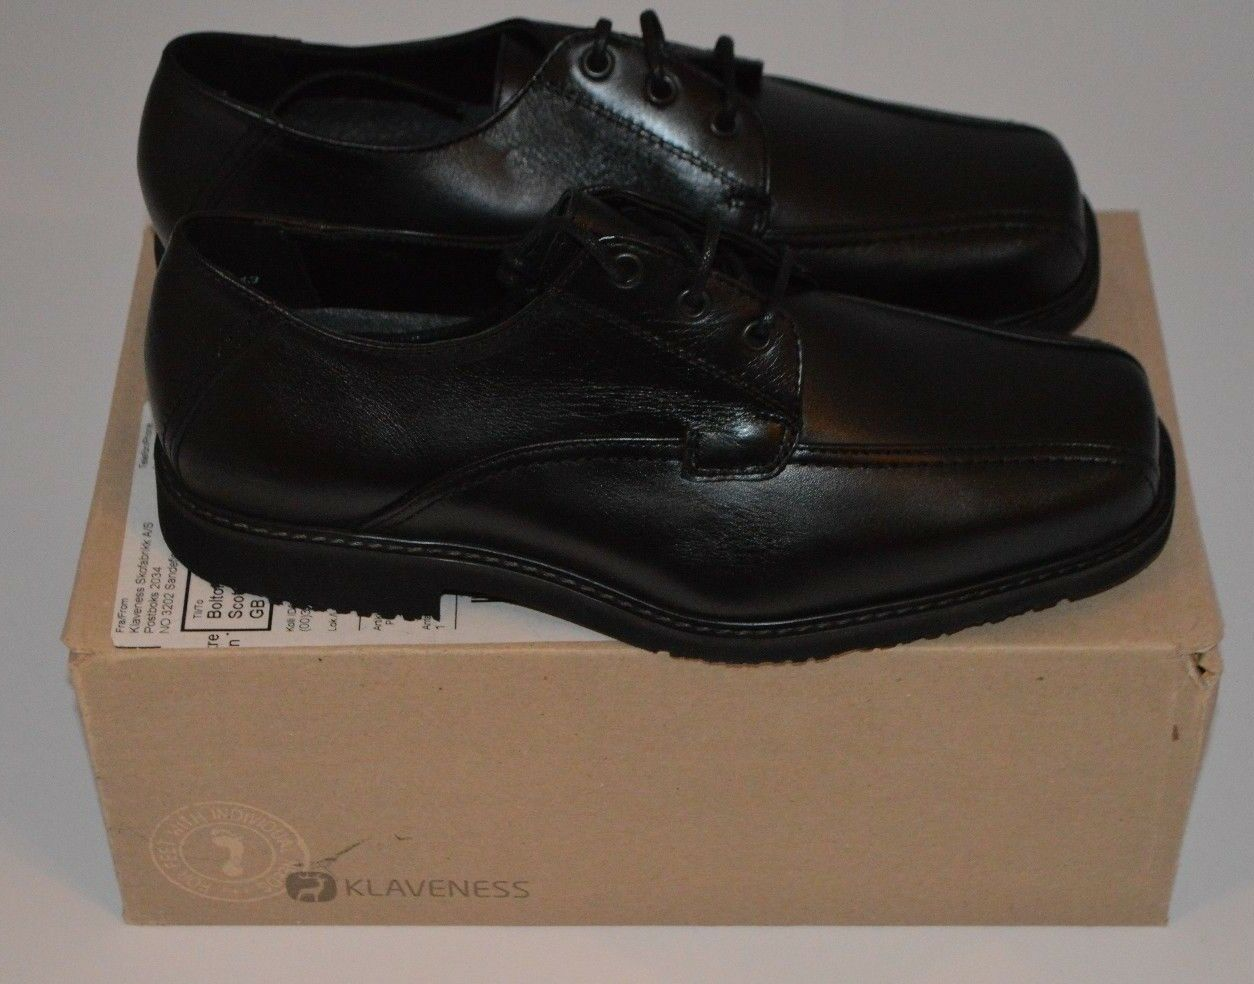 KLAVENESS DESIGNER Damenschuhe BLACK LACE UP Schuhe SIZE UK 5 EU 38 NARROW NEU BOXED